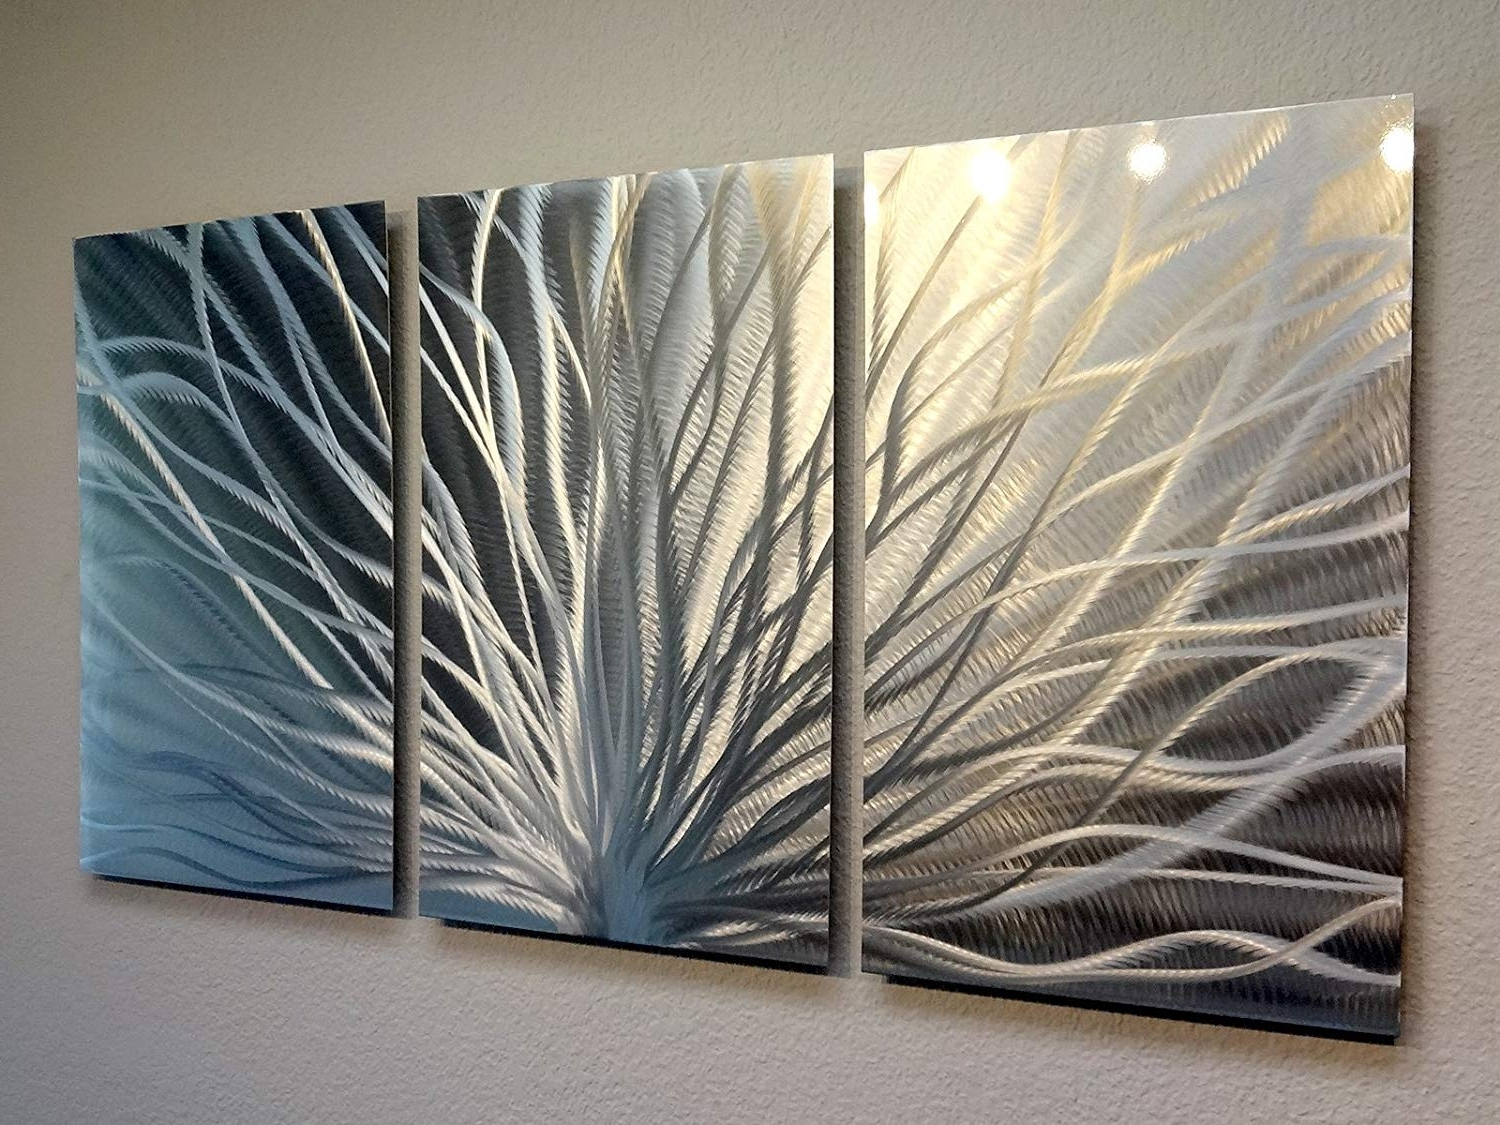 Contemporary Wall Art Decors Inside Recent Amazon: Miles Shay Metal Wall Art, Modern Home Decor, Abstract (View 10 of 15)